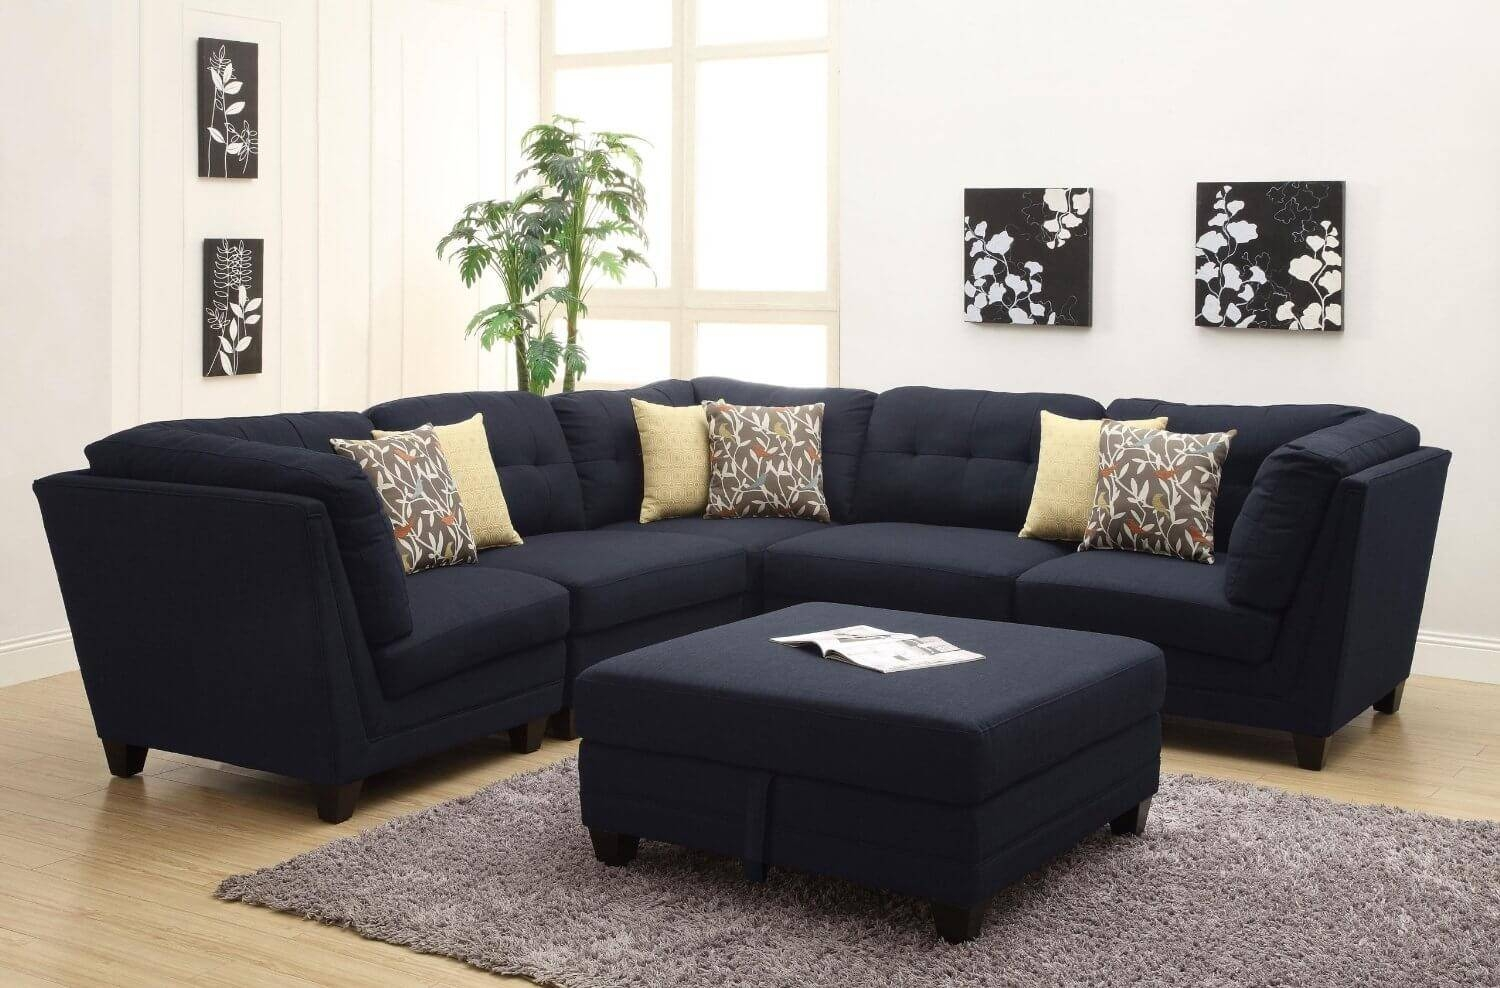 Sofa: Comfort And Style Is Evident In This Dynamic With Tufted for Black Sectional Sofa for Cheap (Image 19 of 30)